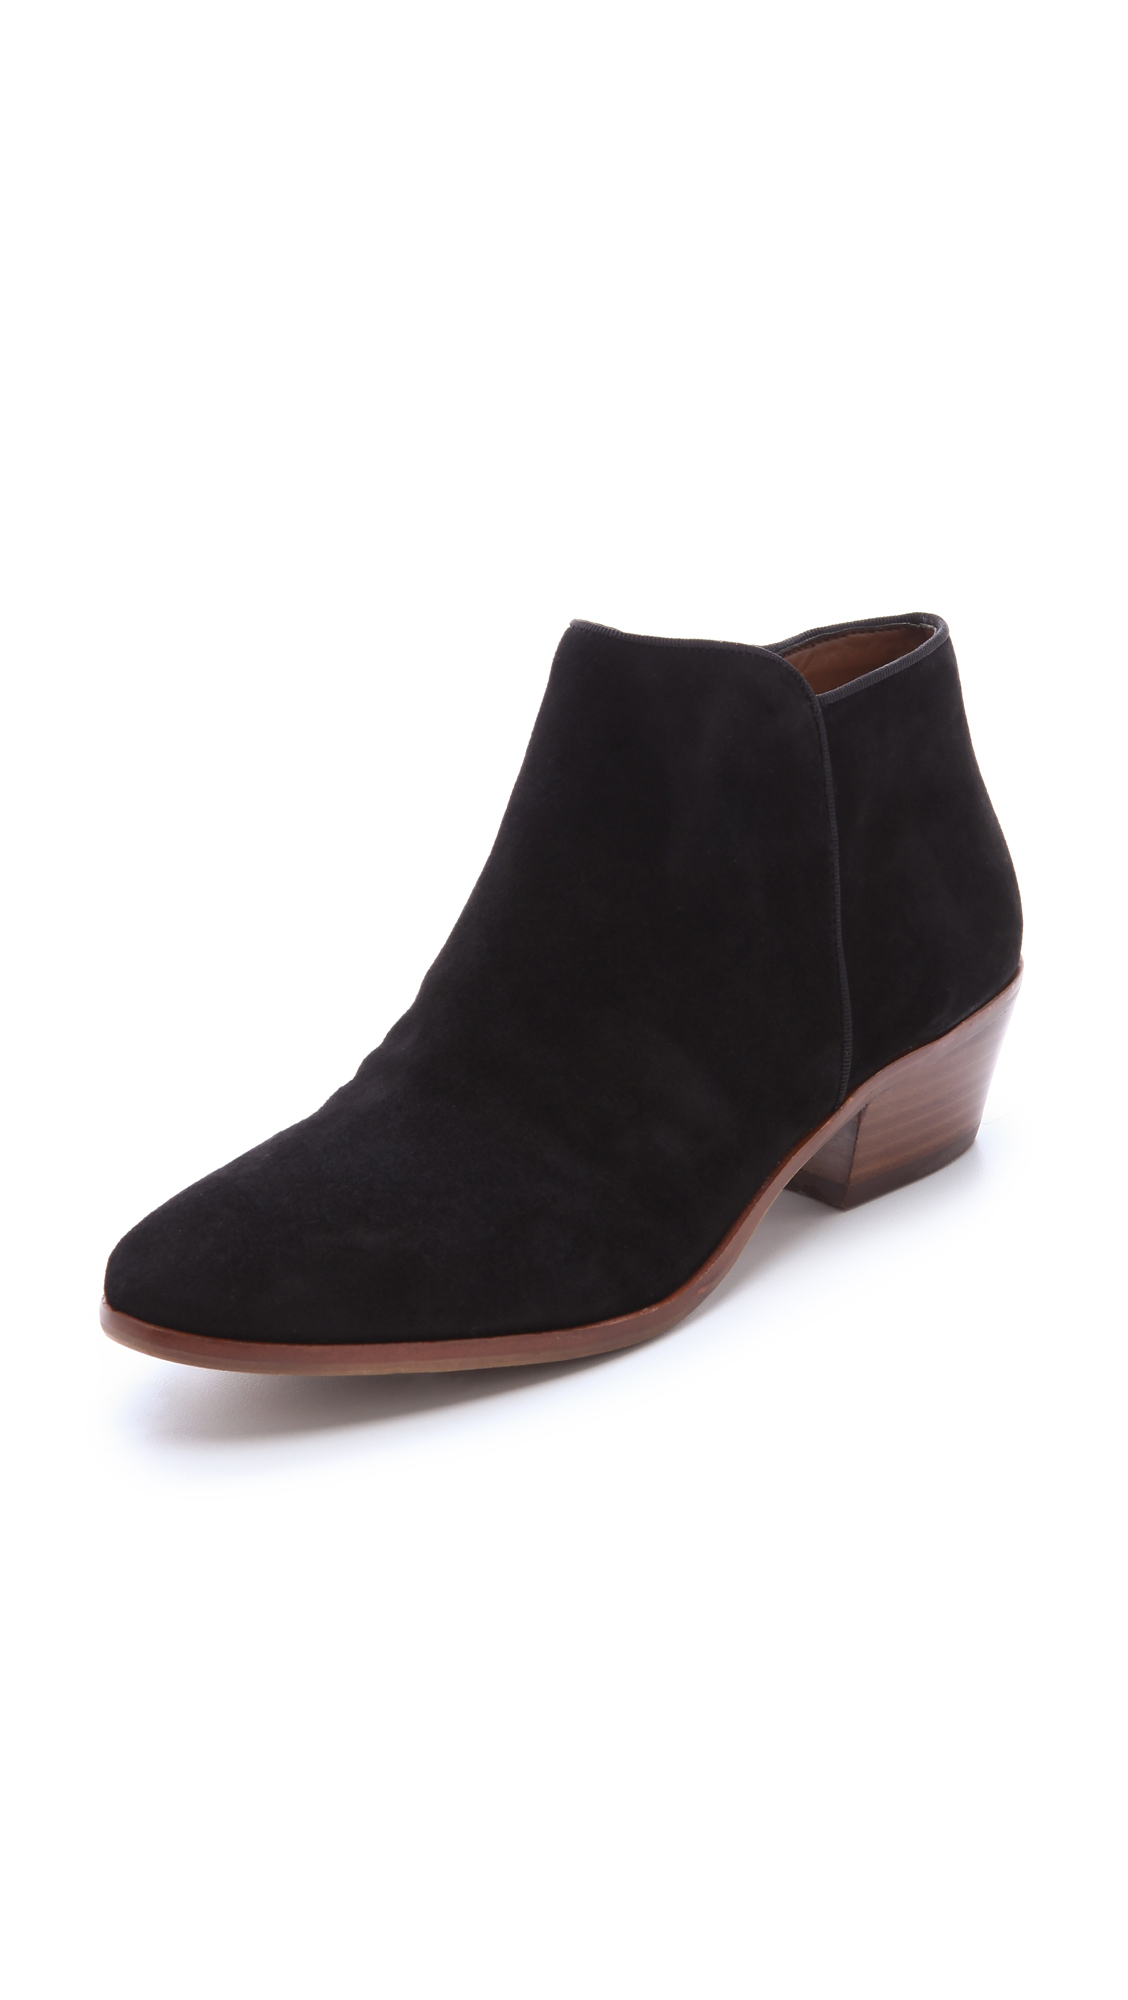 e48f82c2c Sam Edelman Petty Suede Booties - Black